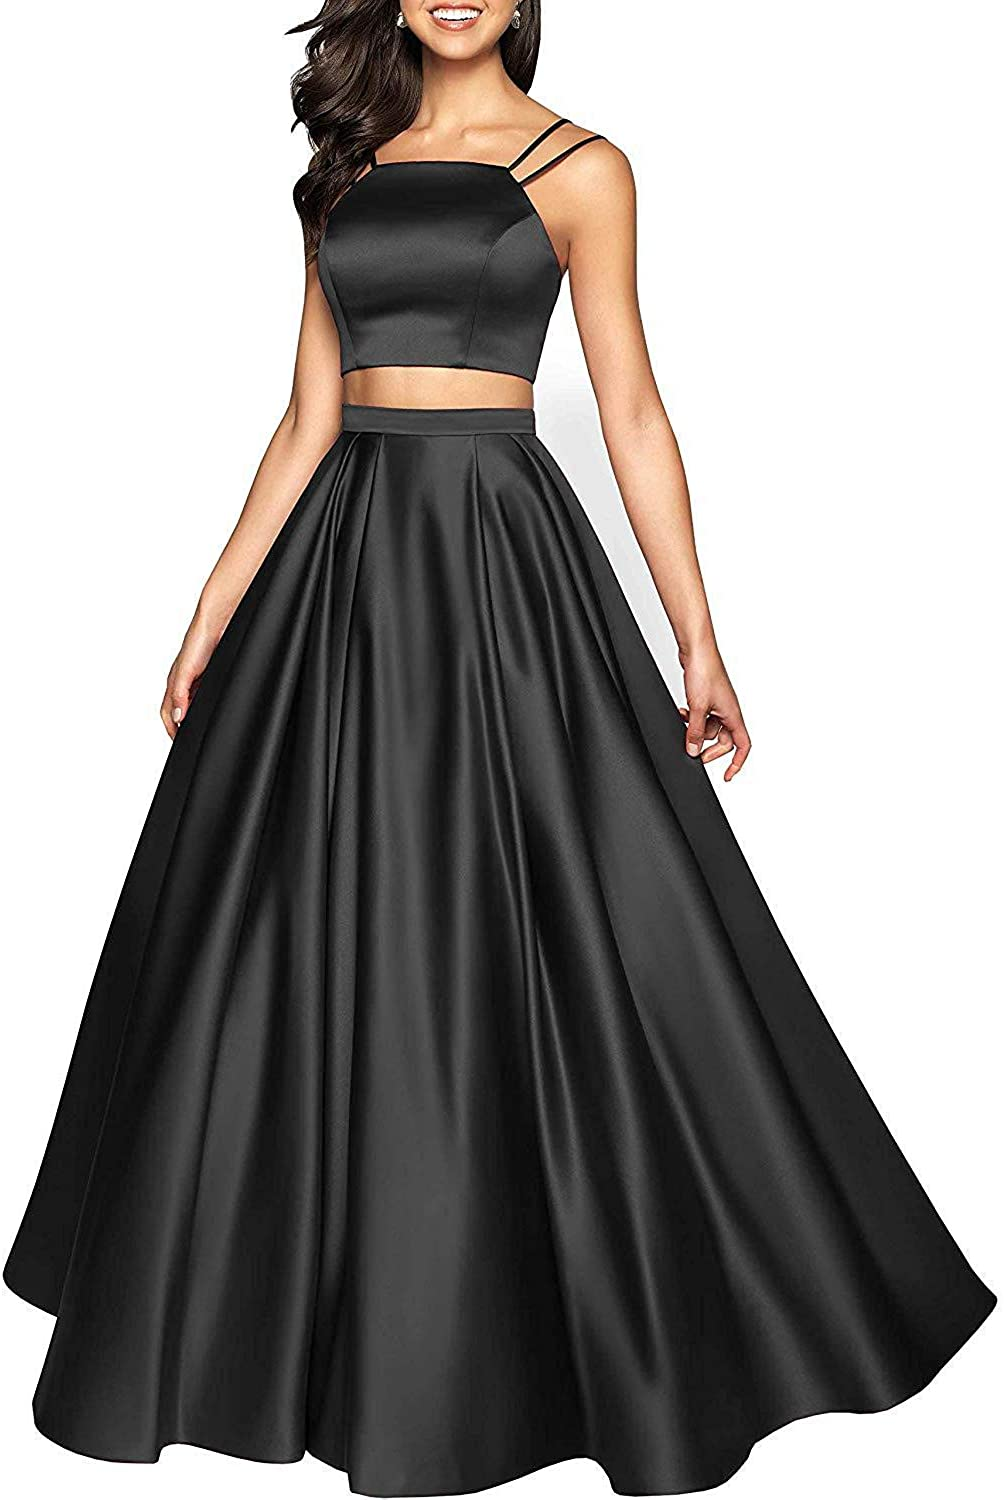 Rjer Two Piece Prom Dresses Long 予約販売 優先配送 Form Women Ball Satin Gowns for